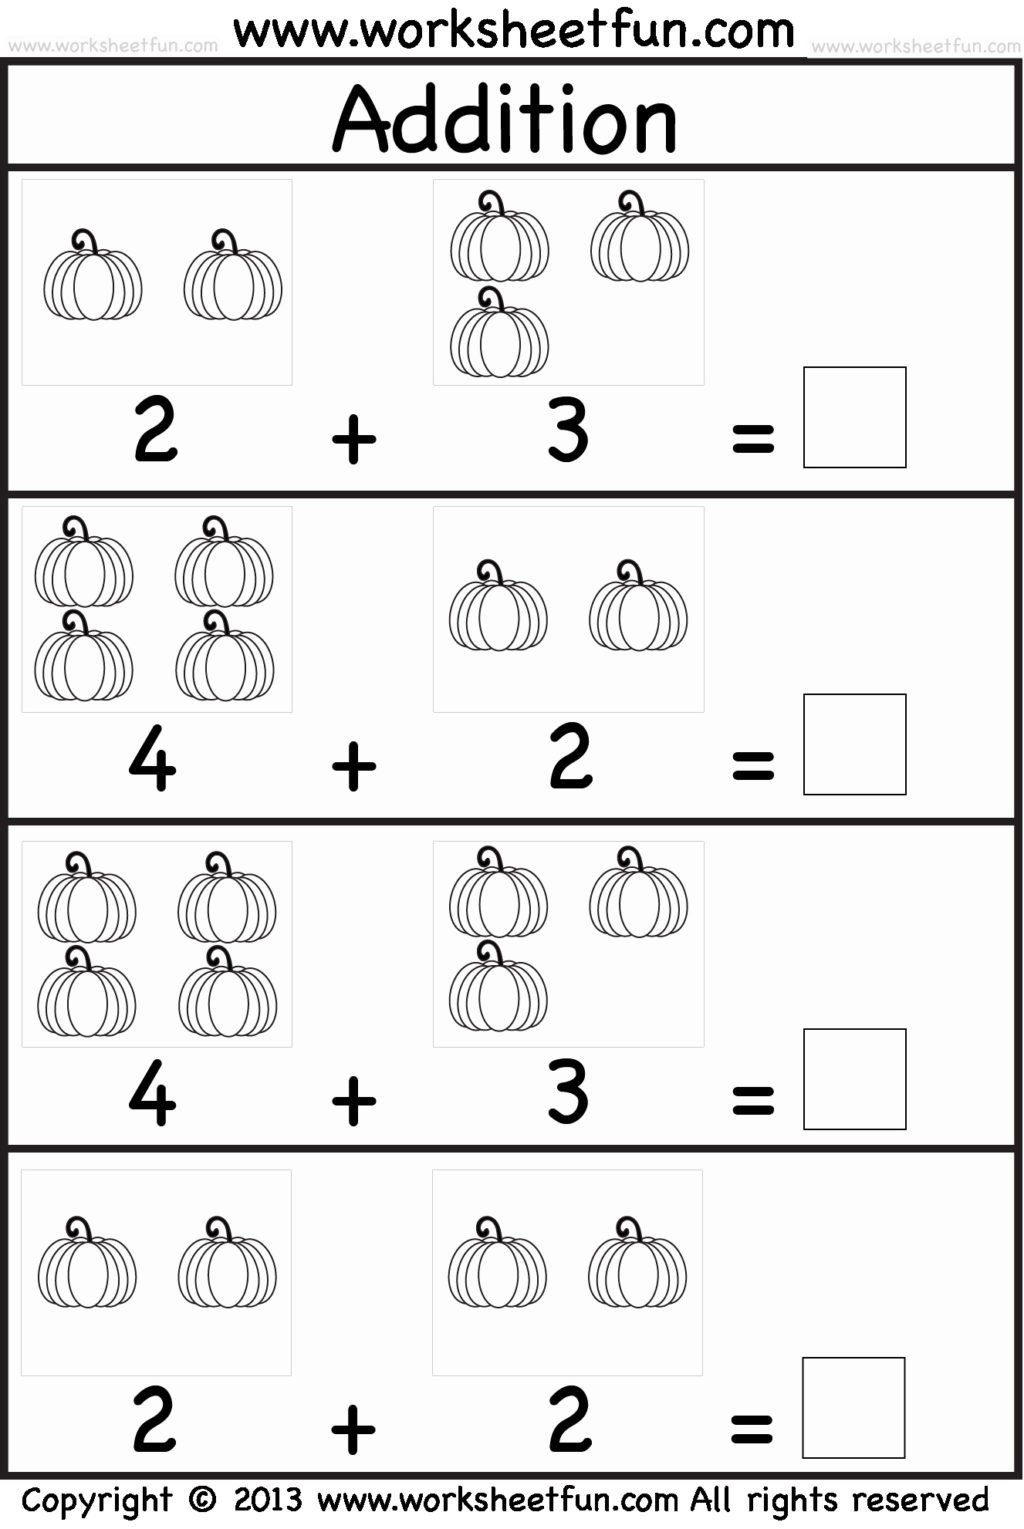 worksheet kindergartenth worksheets free printable pdf shapes for kids coloring pages 1024x1529